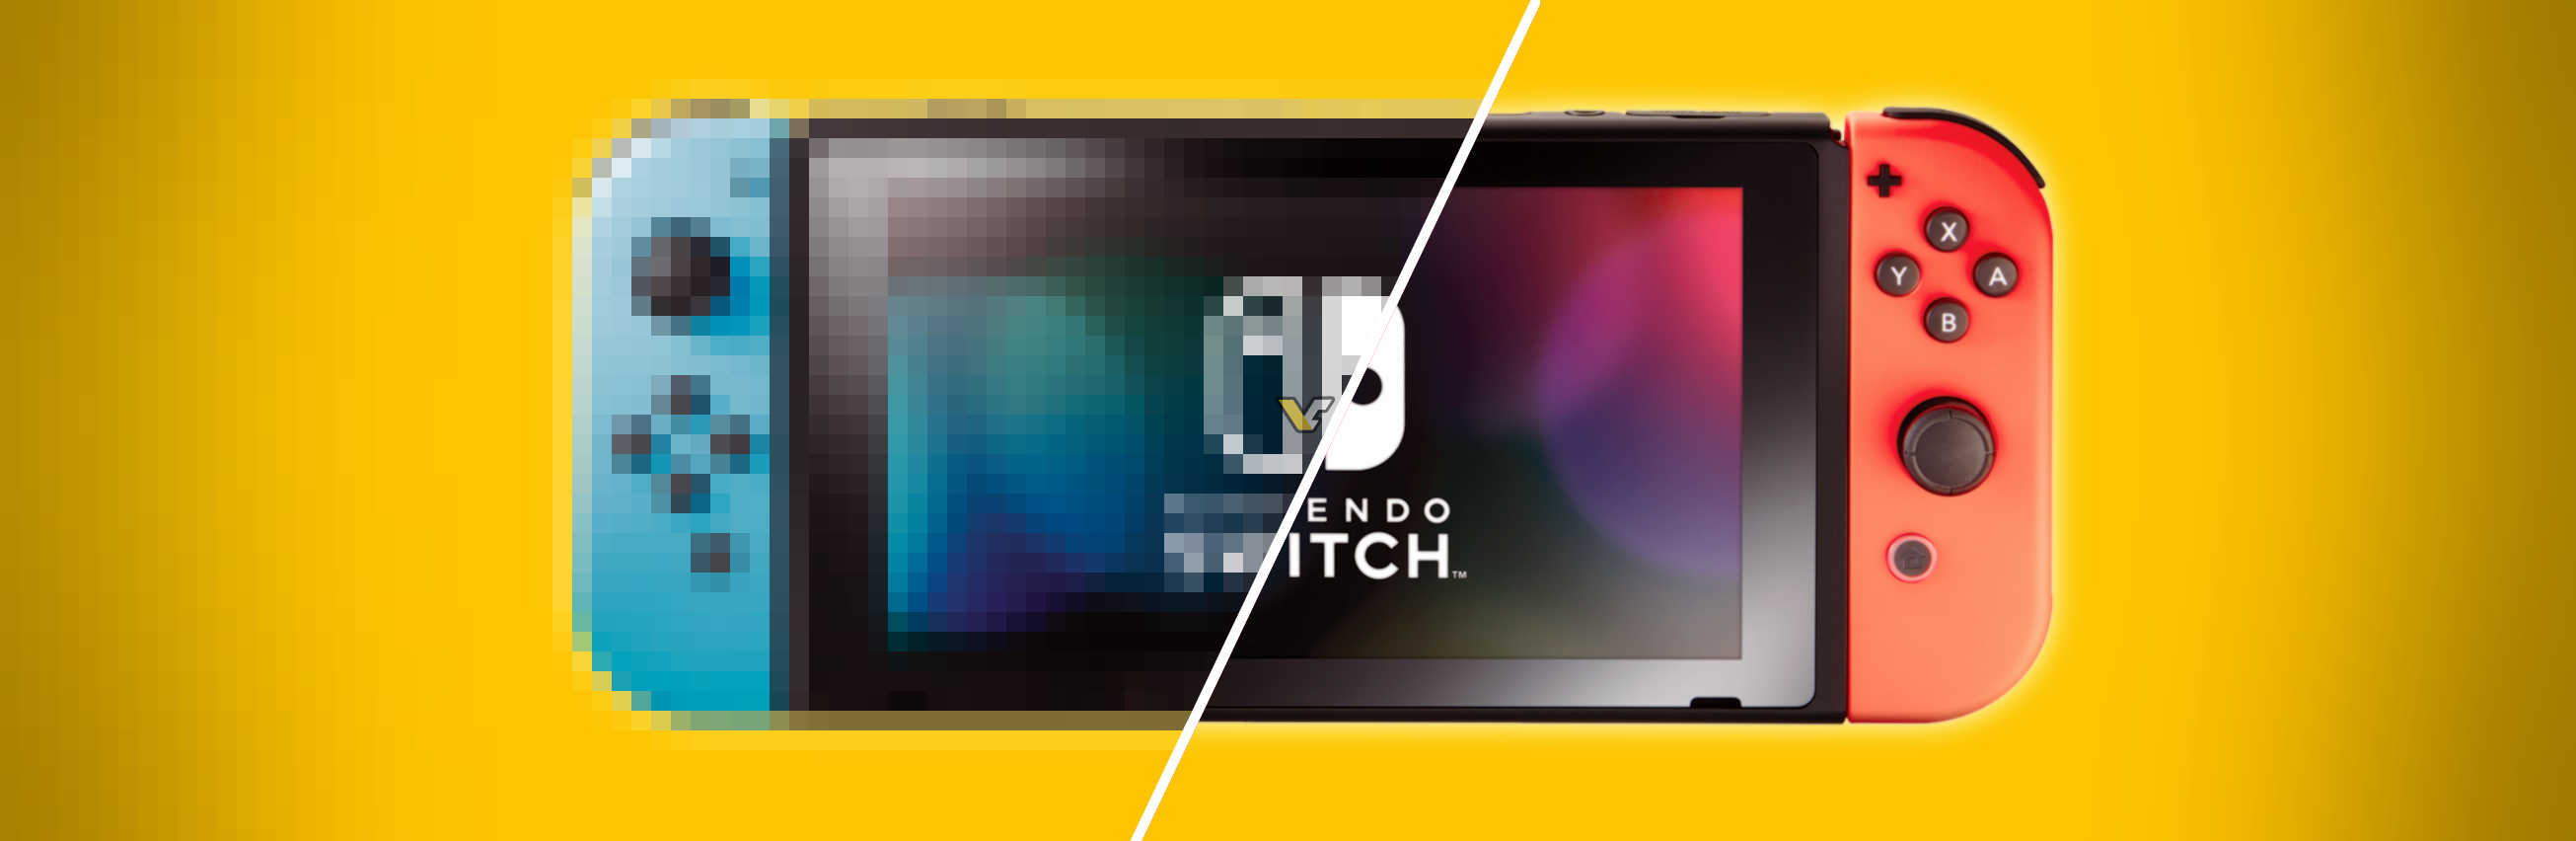 Nintendo Switch (Pro) 2021 to feature NVIDIA DLSS enabled TV mode – VideoCardz.com